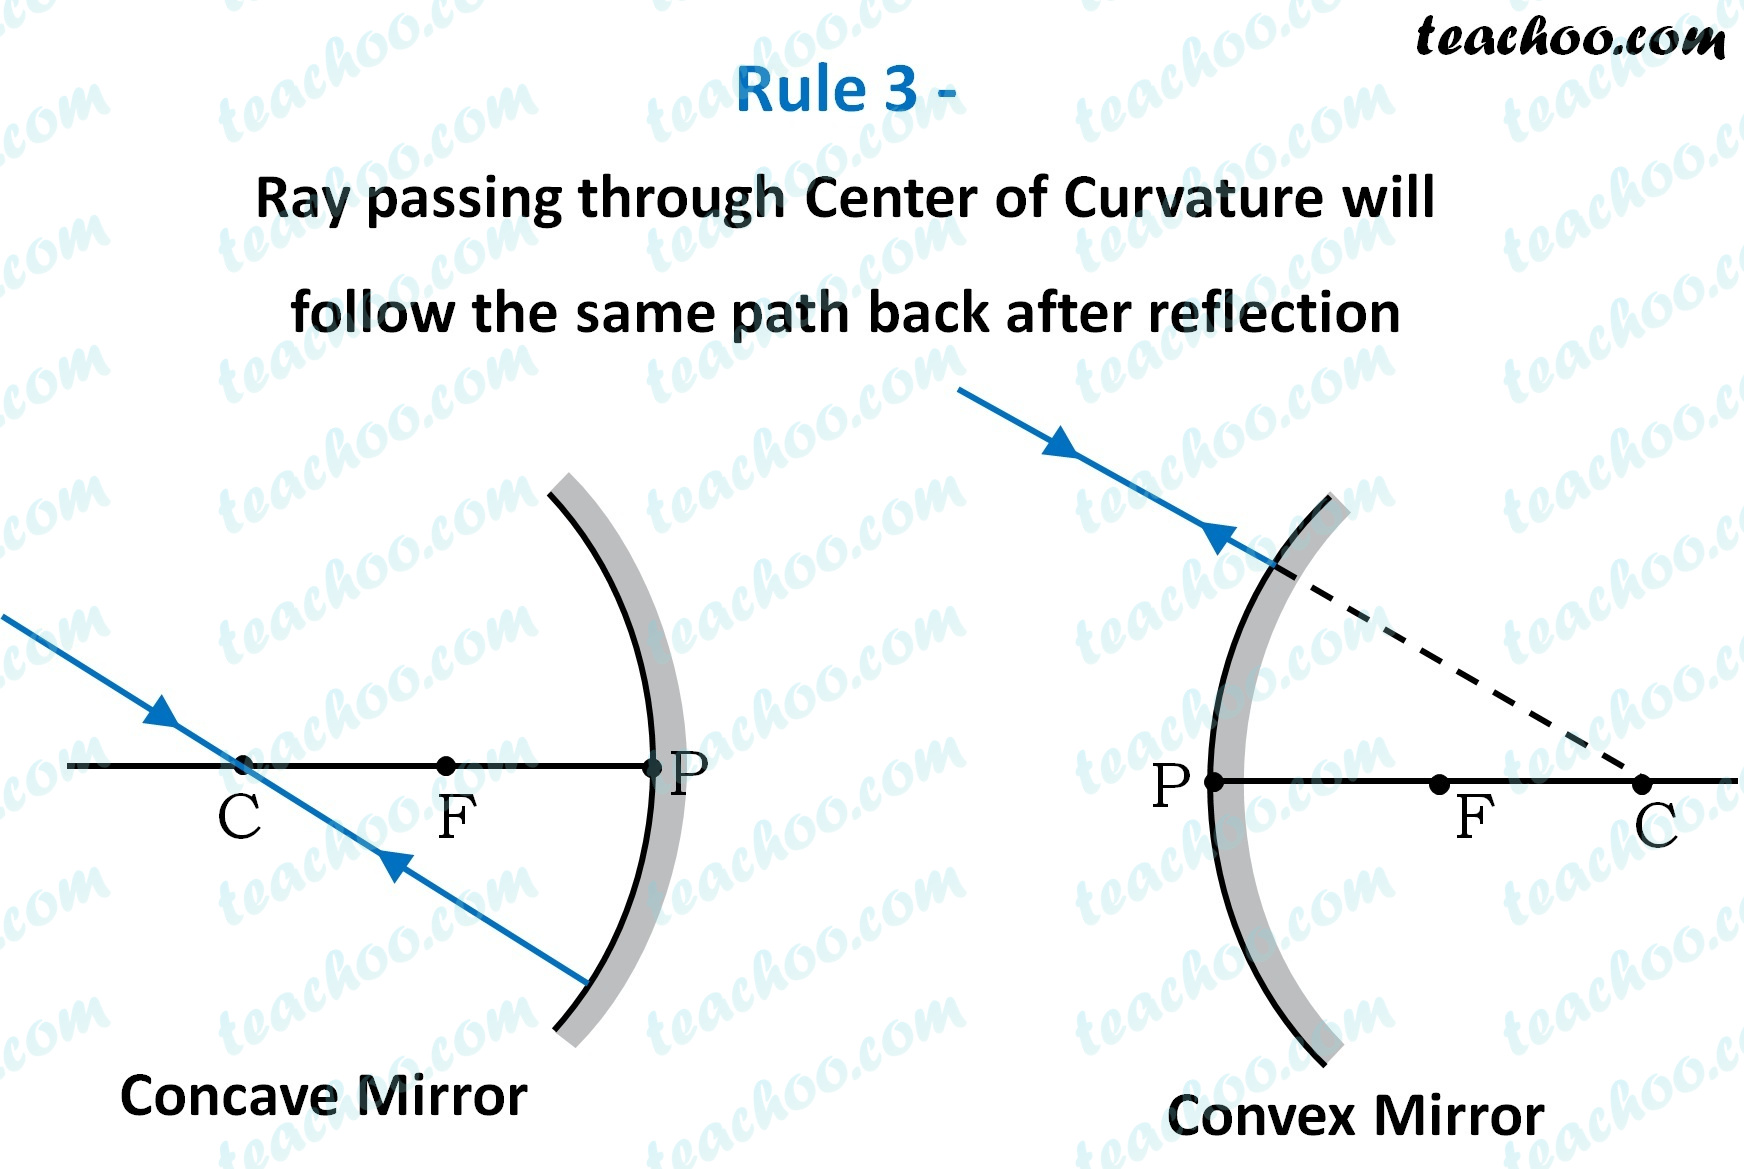 rule-3---ray-passing-through-center-of-curvature-will-follow-the-same-path--teachoo.jpg